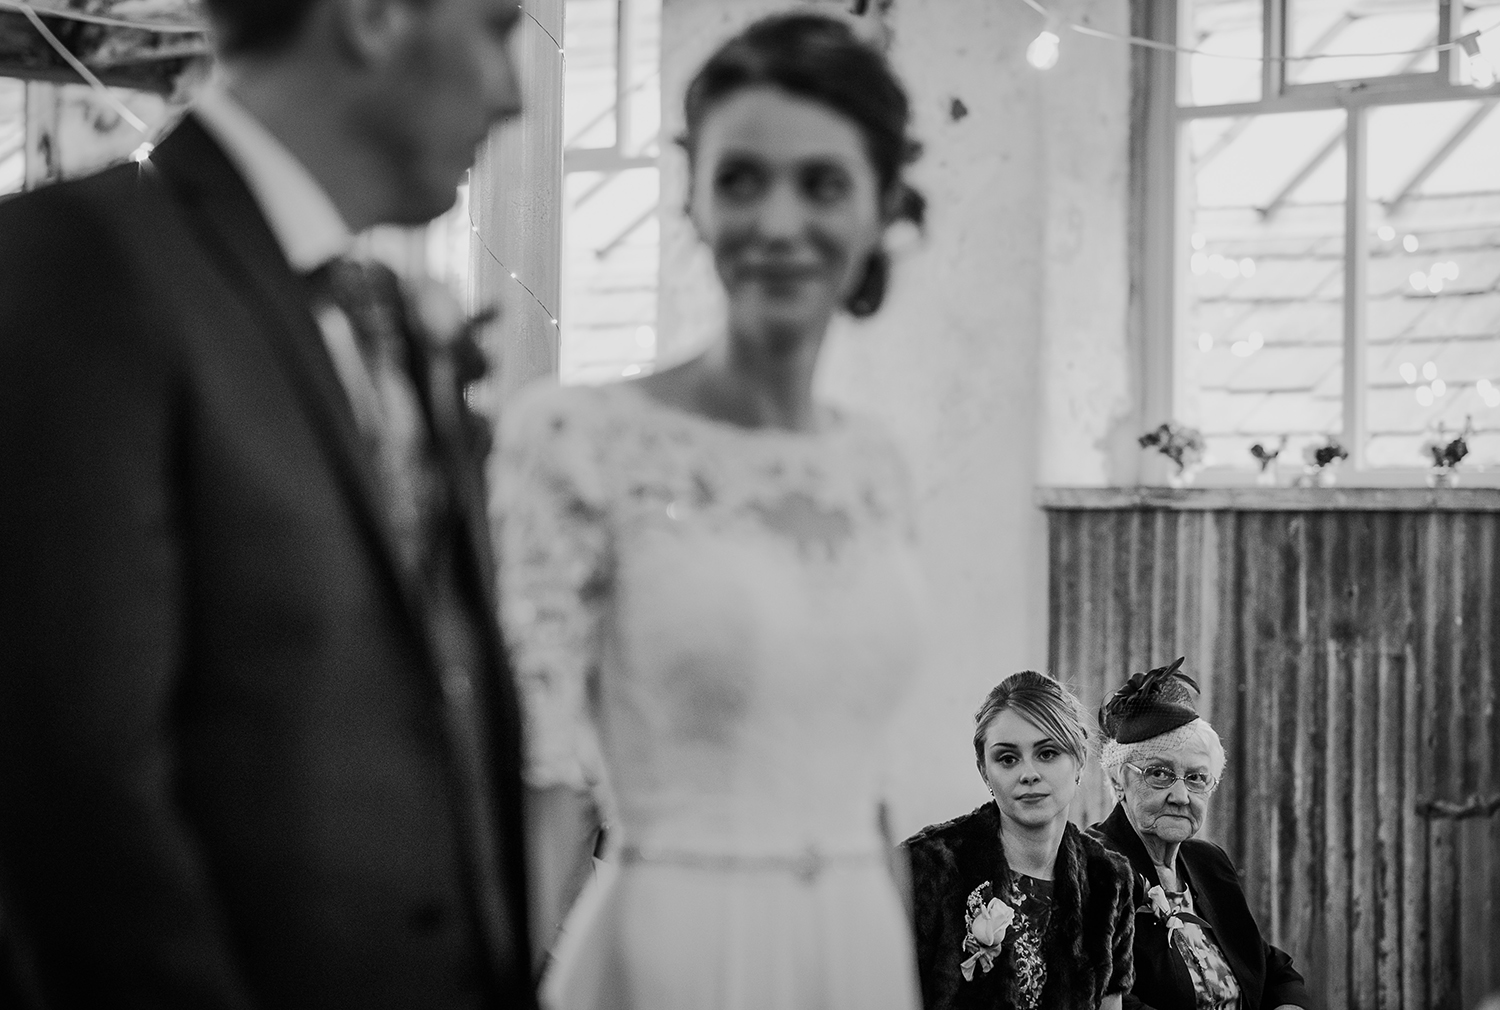 BW photo. Brides grandmother looking on at the couple